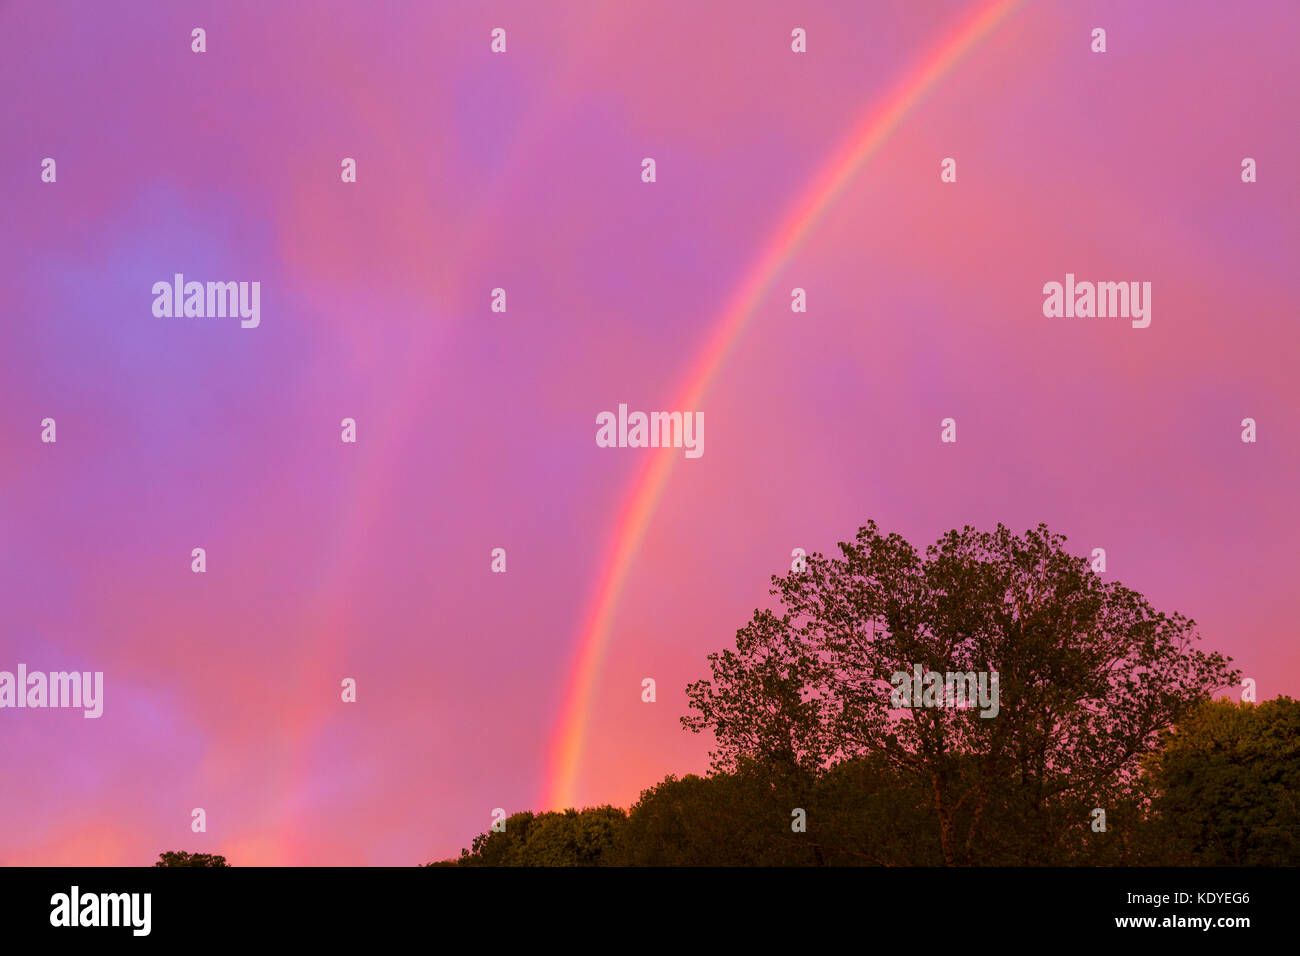 Colorful double rainbow in a dramatic pinky purple sunset sky over spring woodland at twilight with light clouds - Stock Image